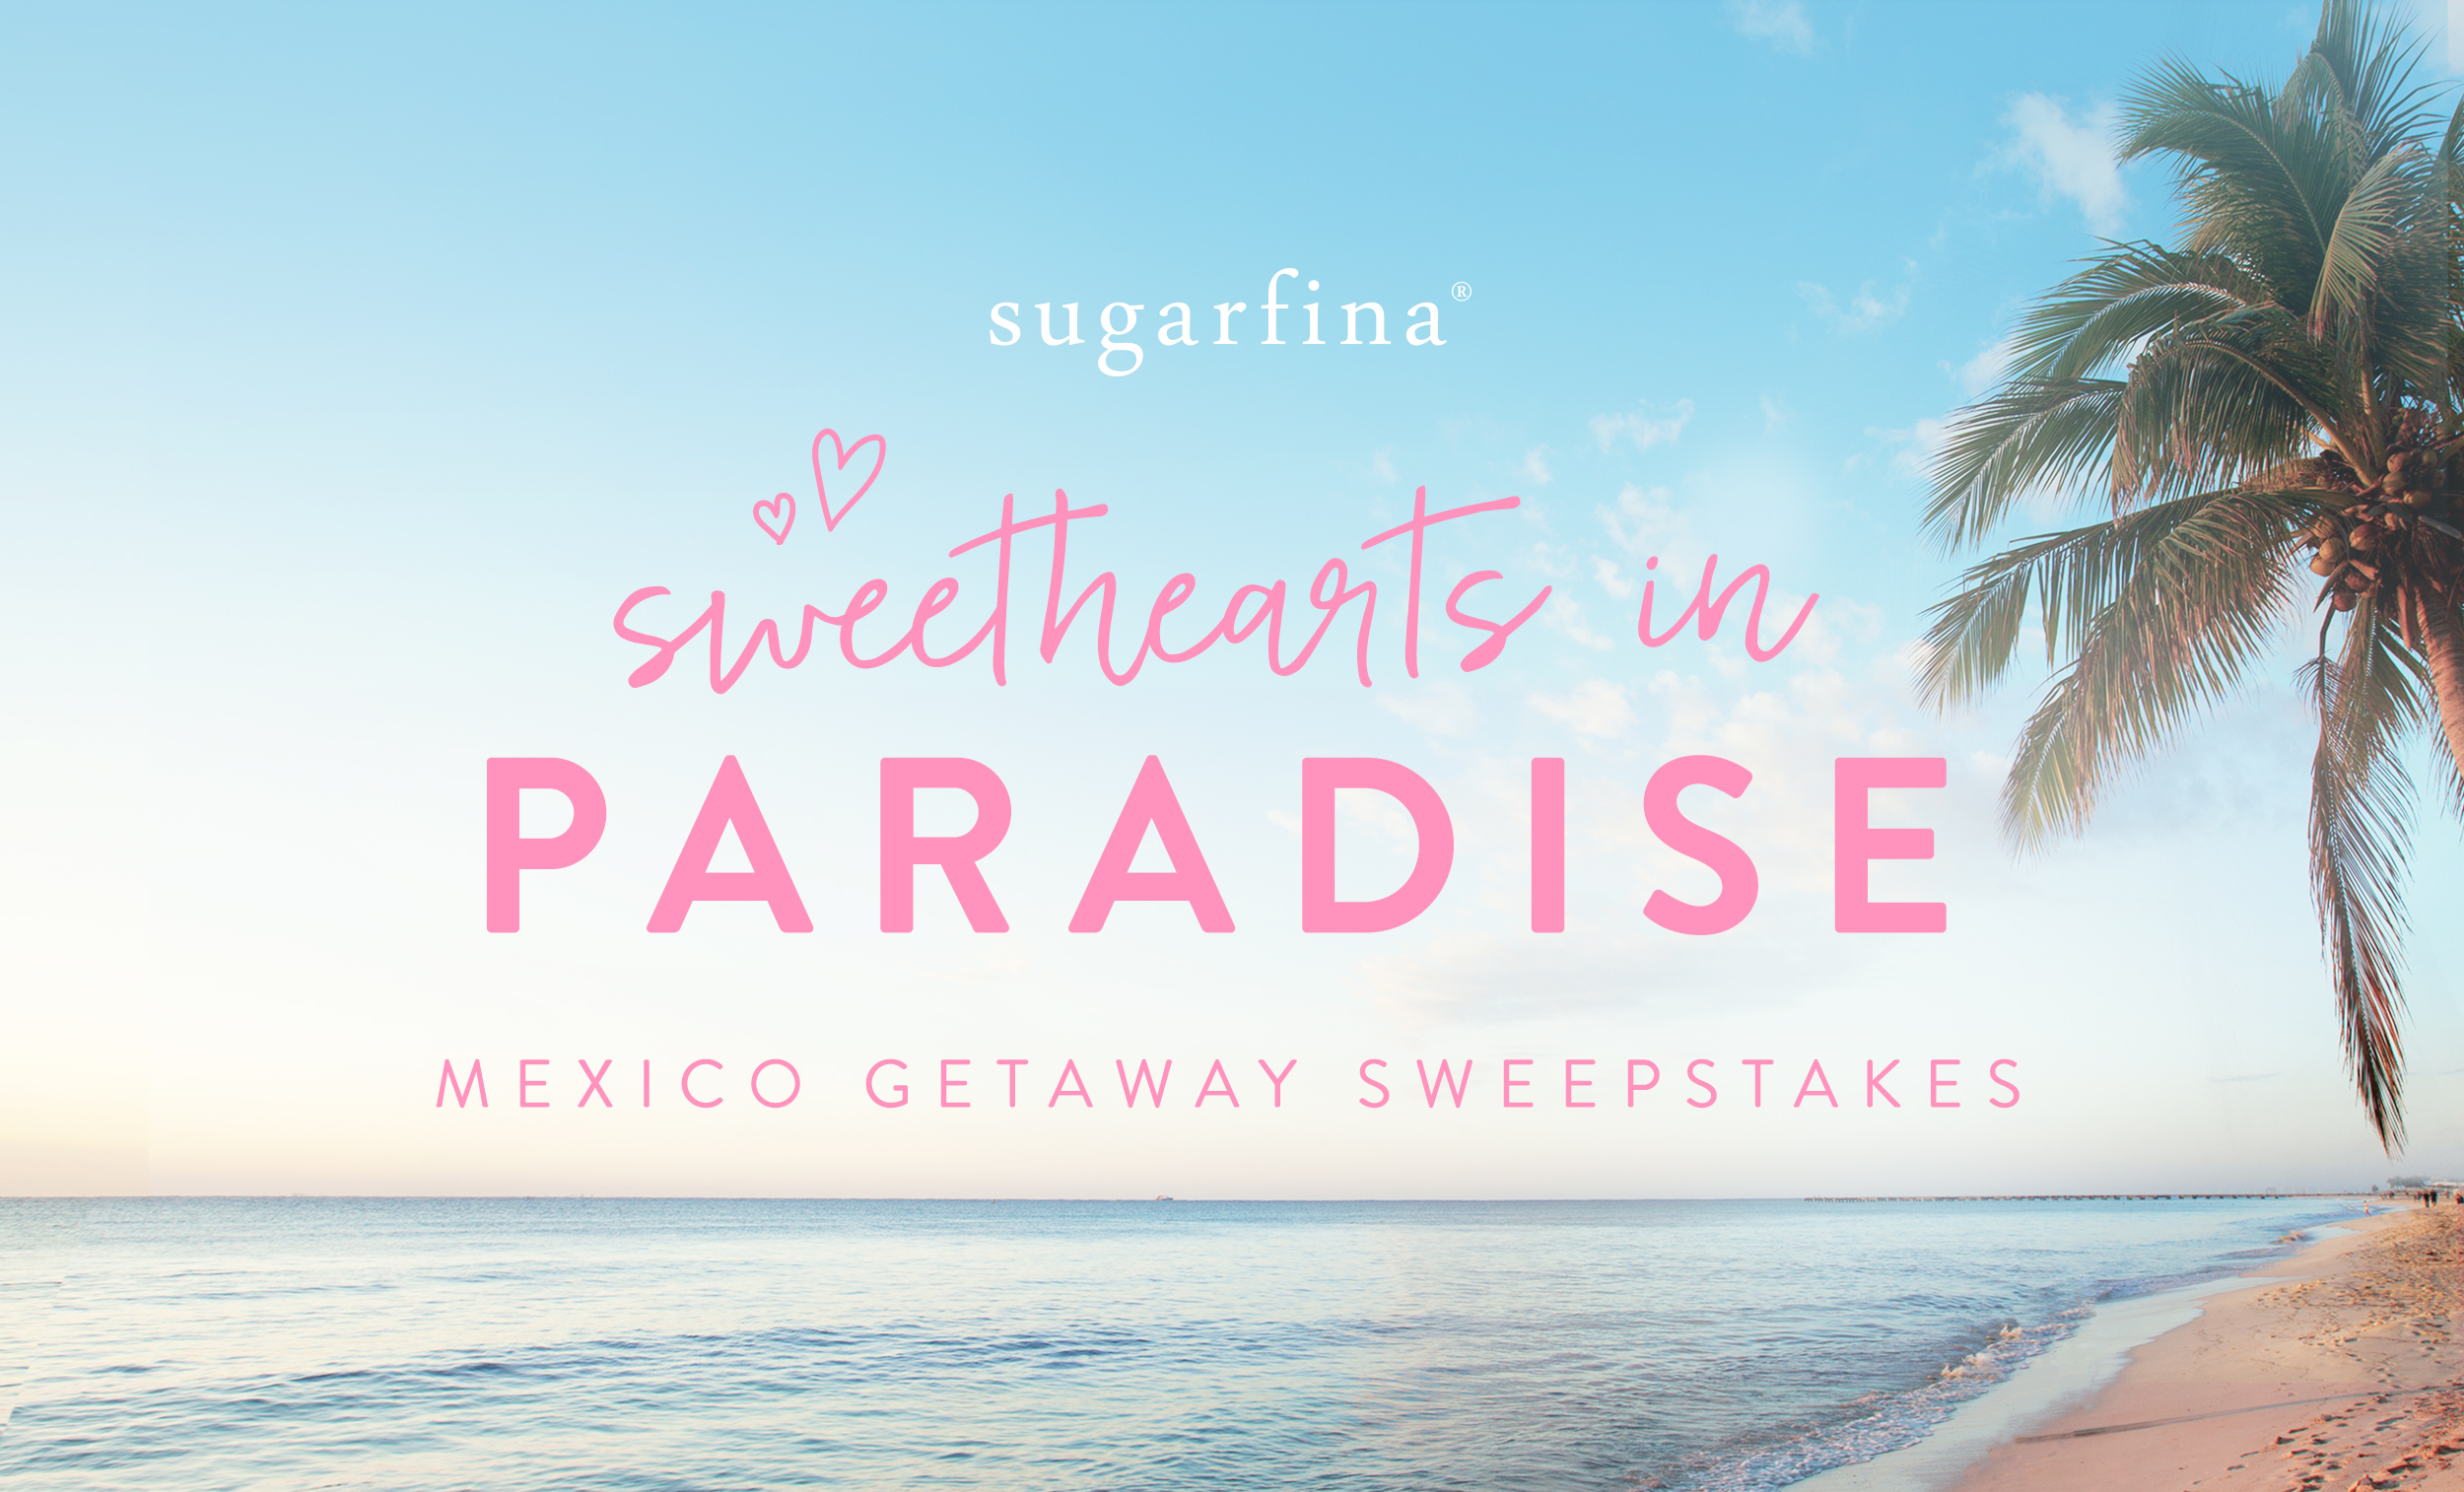 Sugarfina is giving away a romantic vacation to Mexico, so enter right now!